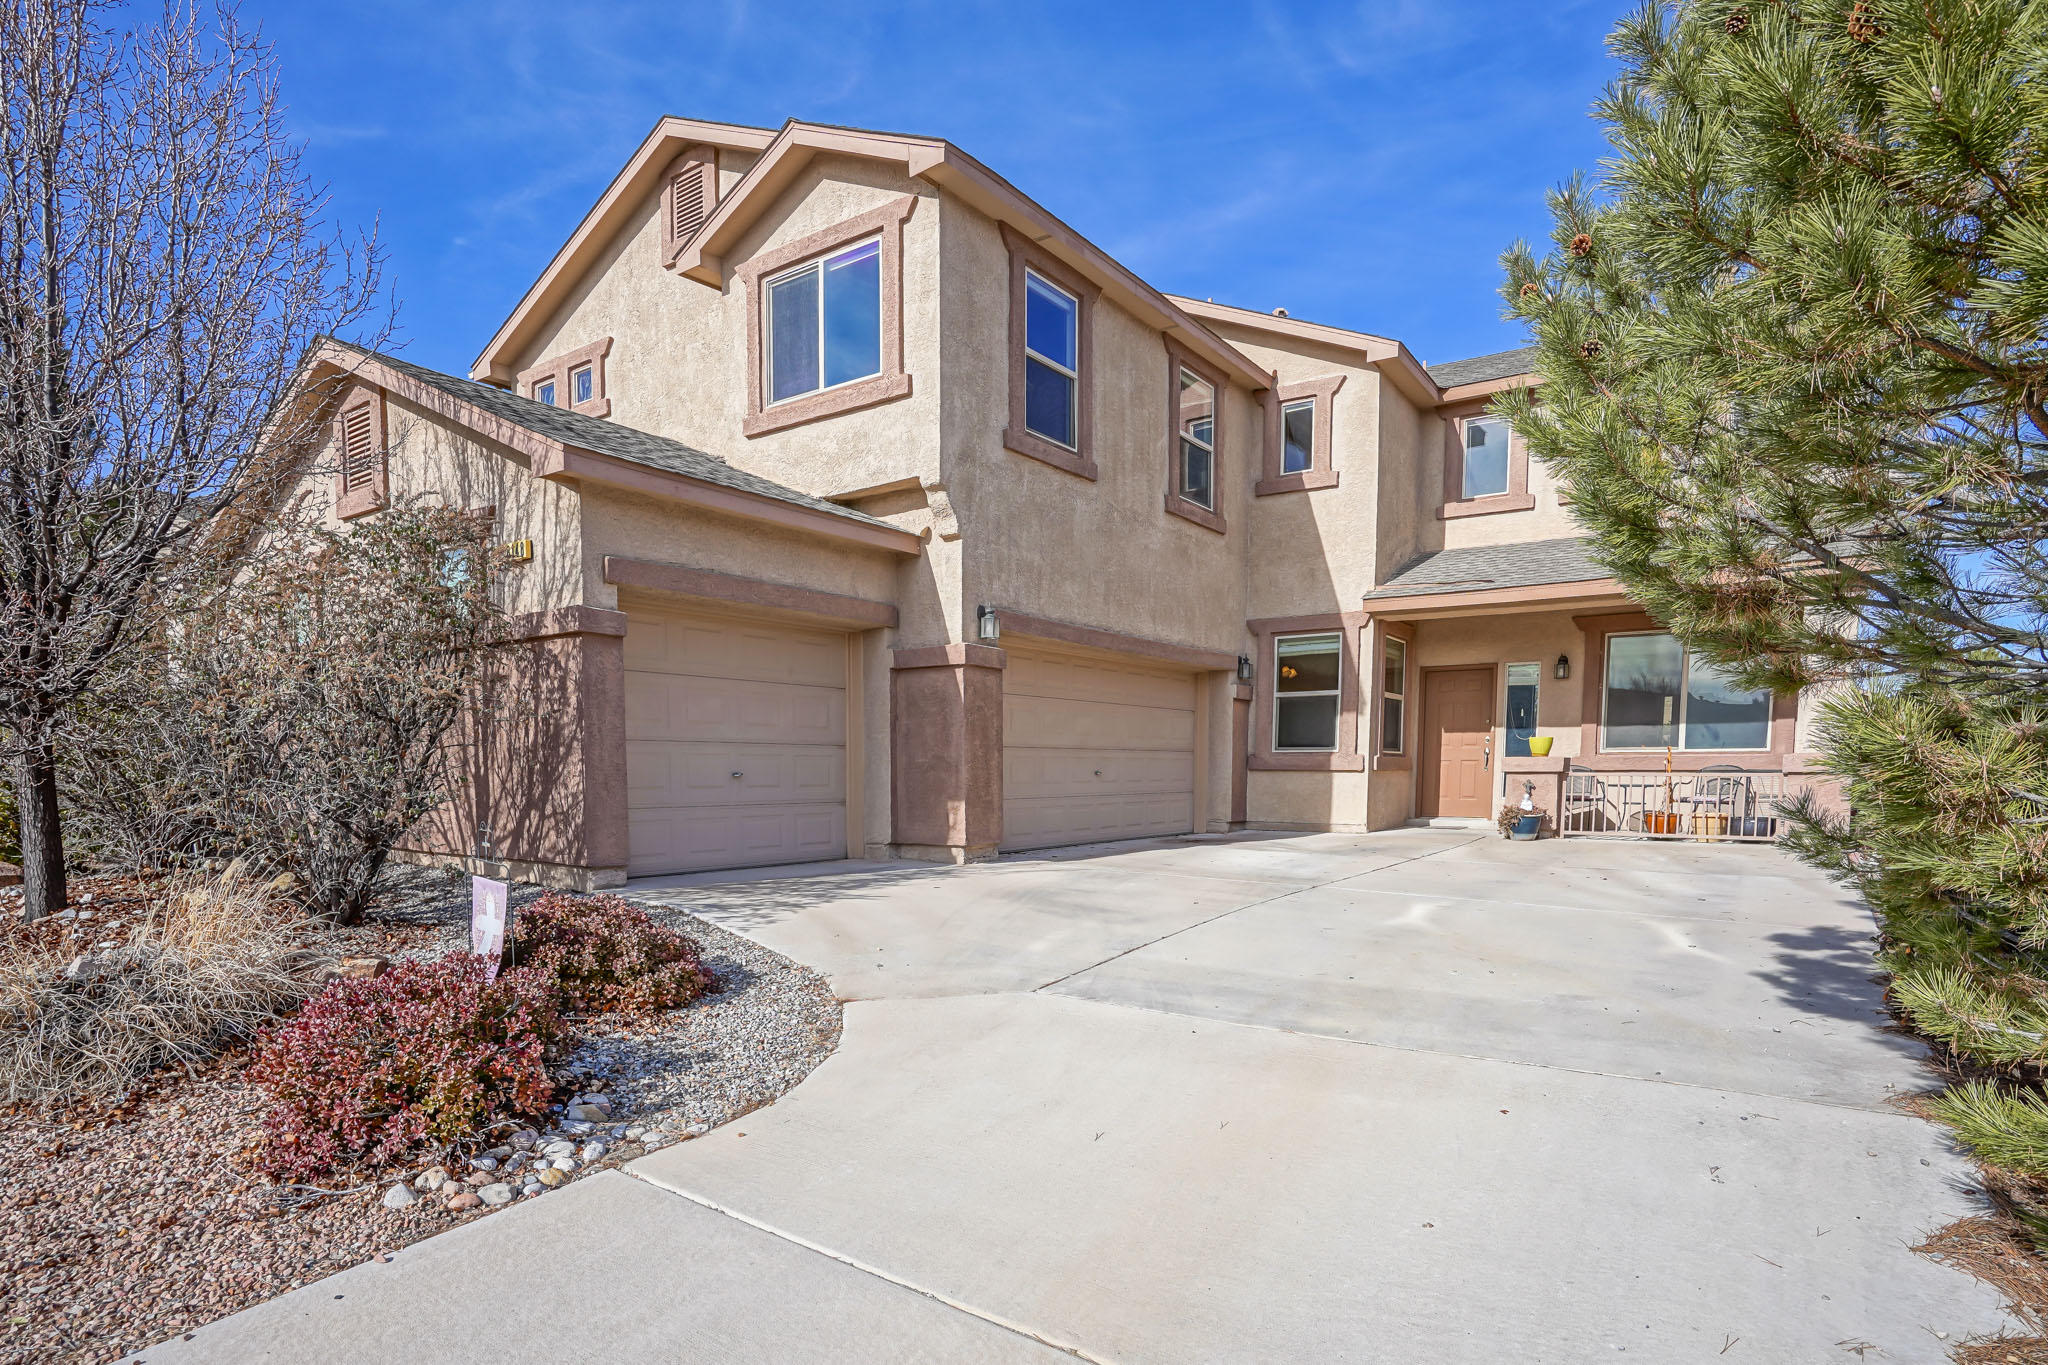 8148 Sand Springs Circle, Albuquerque NM 87114